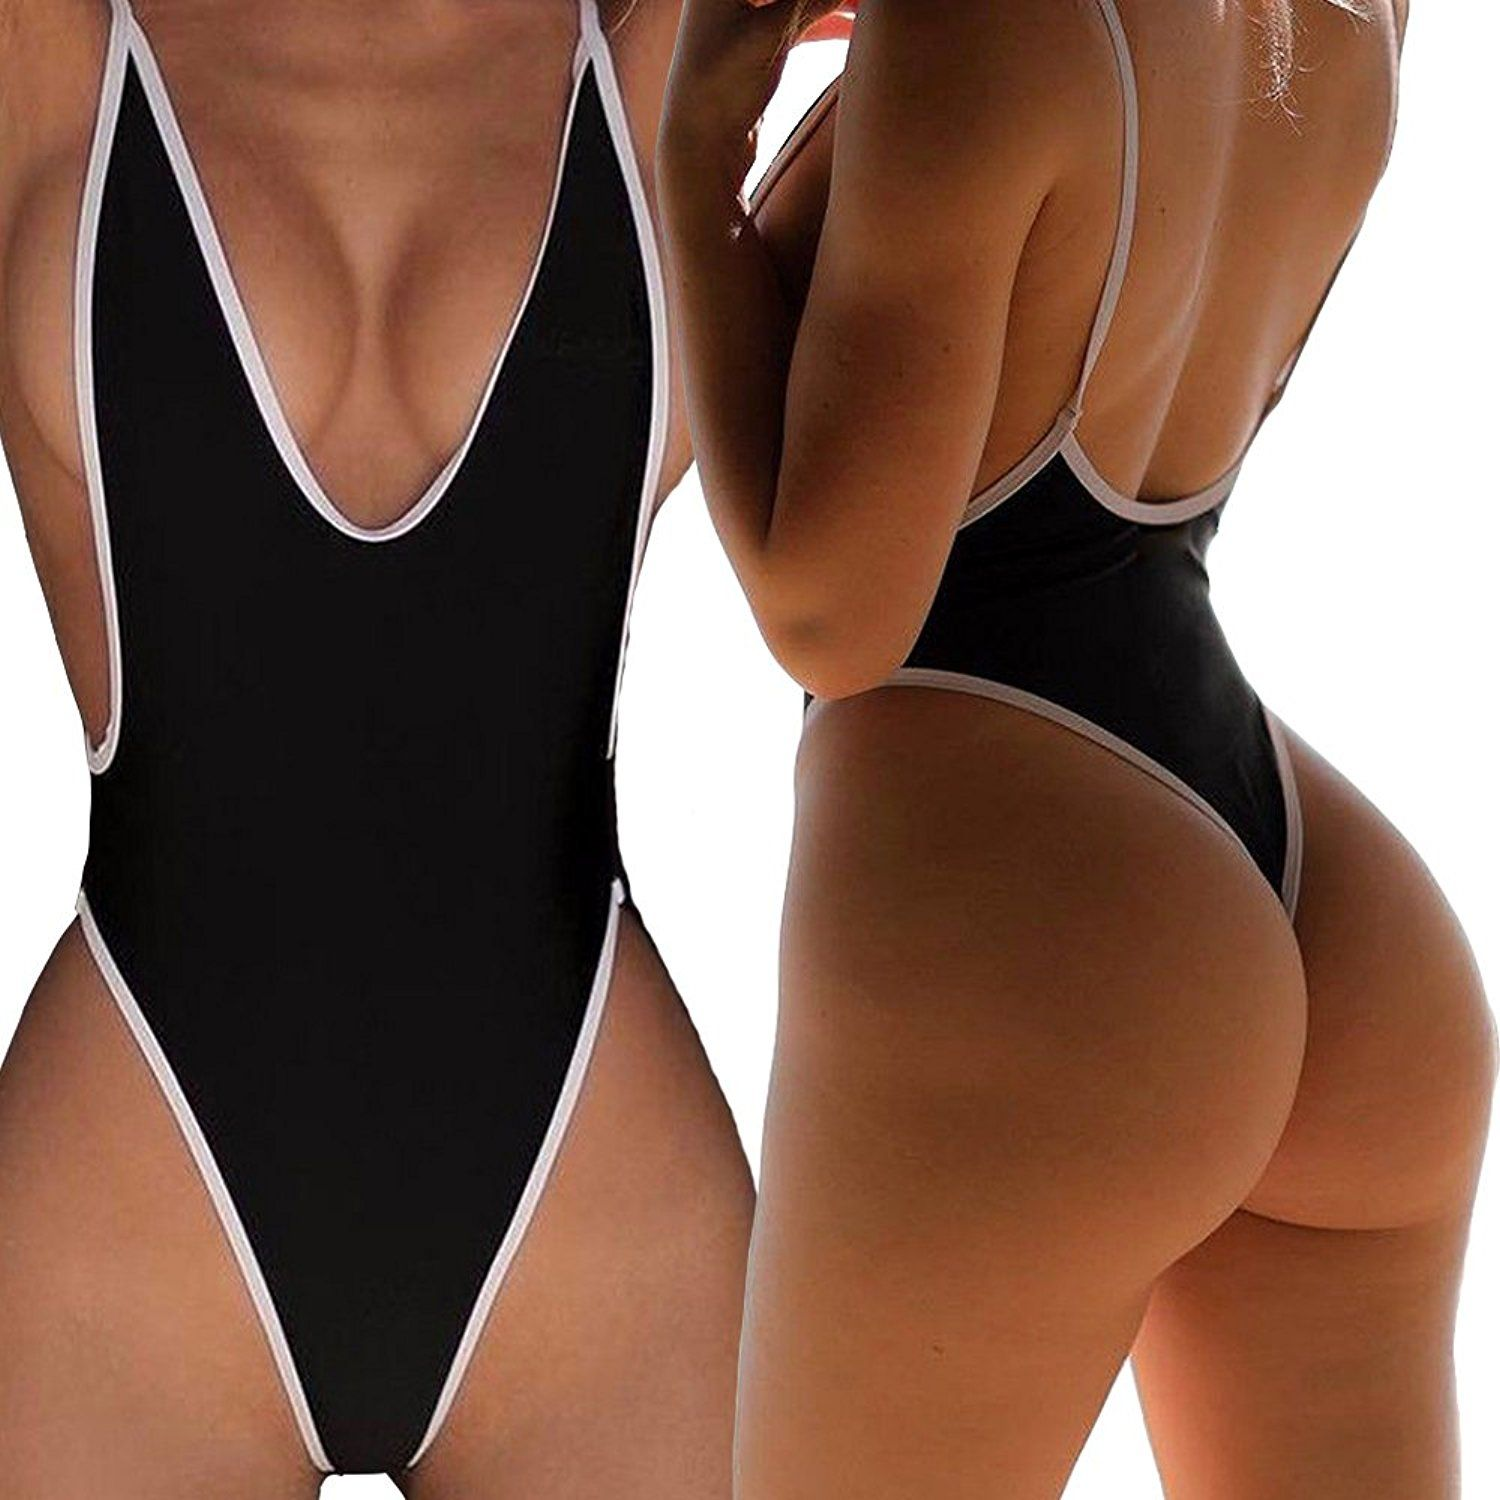 e2be14c592d CROSS1946 Sexy Womens Monokini Deep V One Piece Backless Cheeky Swimwear  Semi Thong Bikini at Amazon Women's Clothing store: